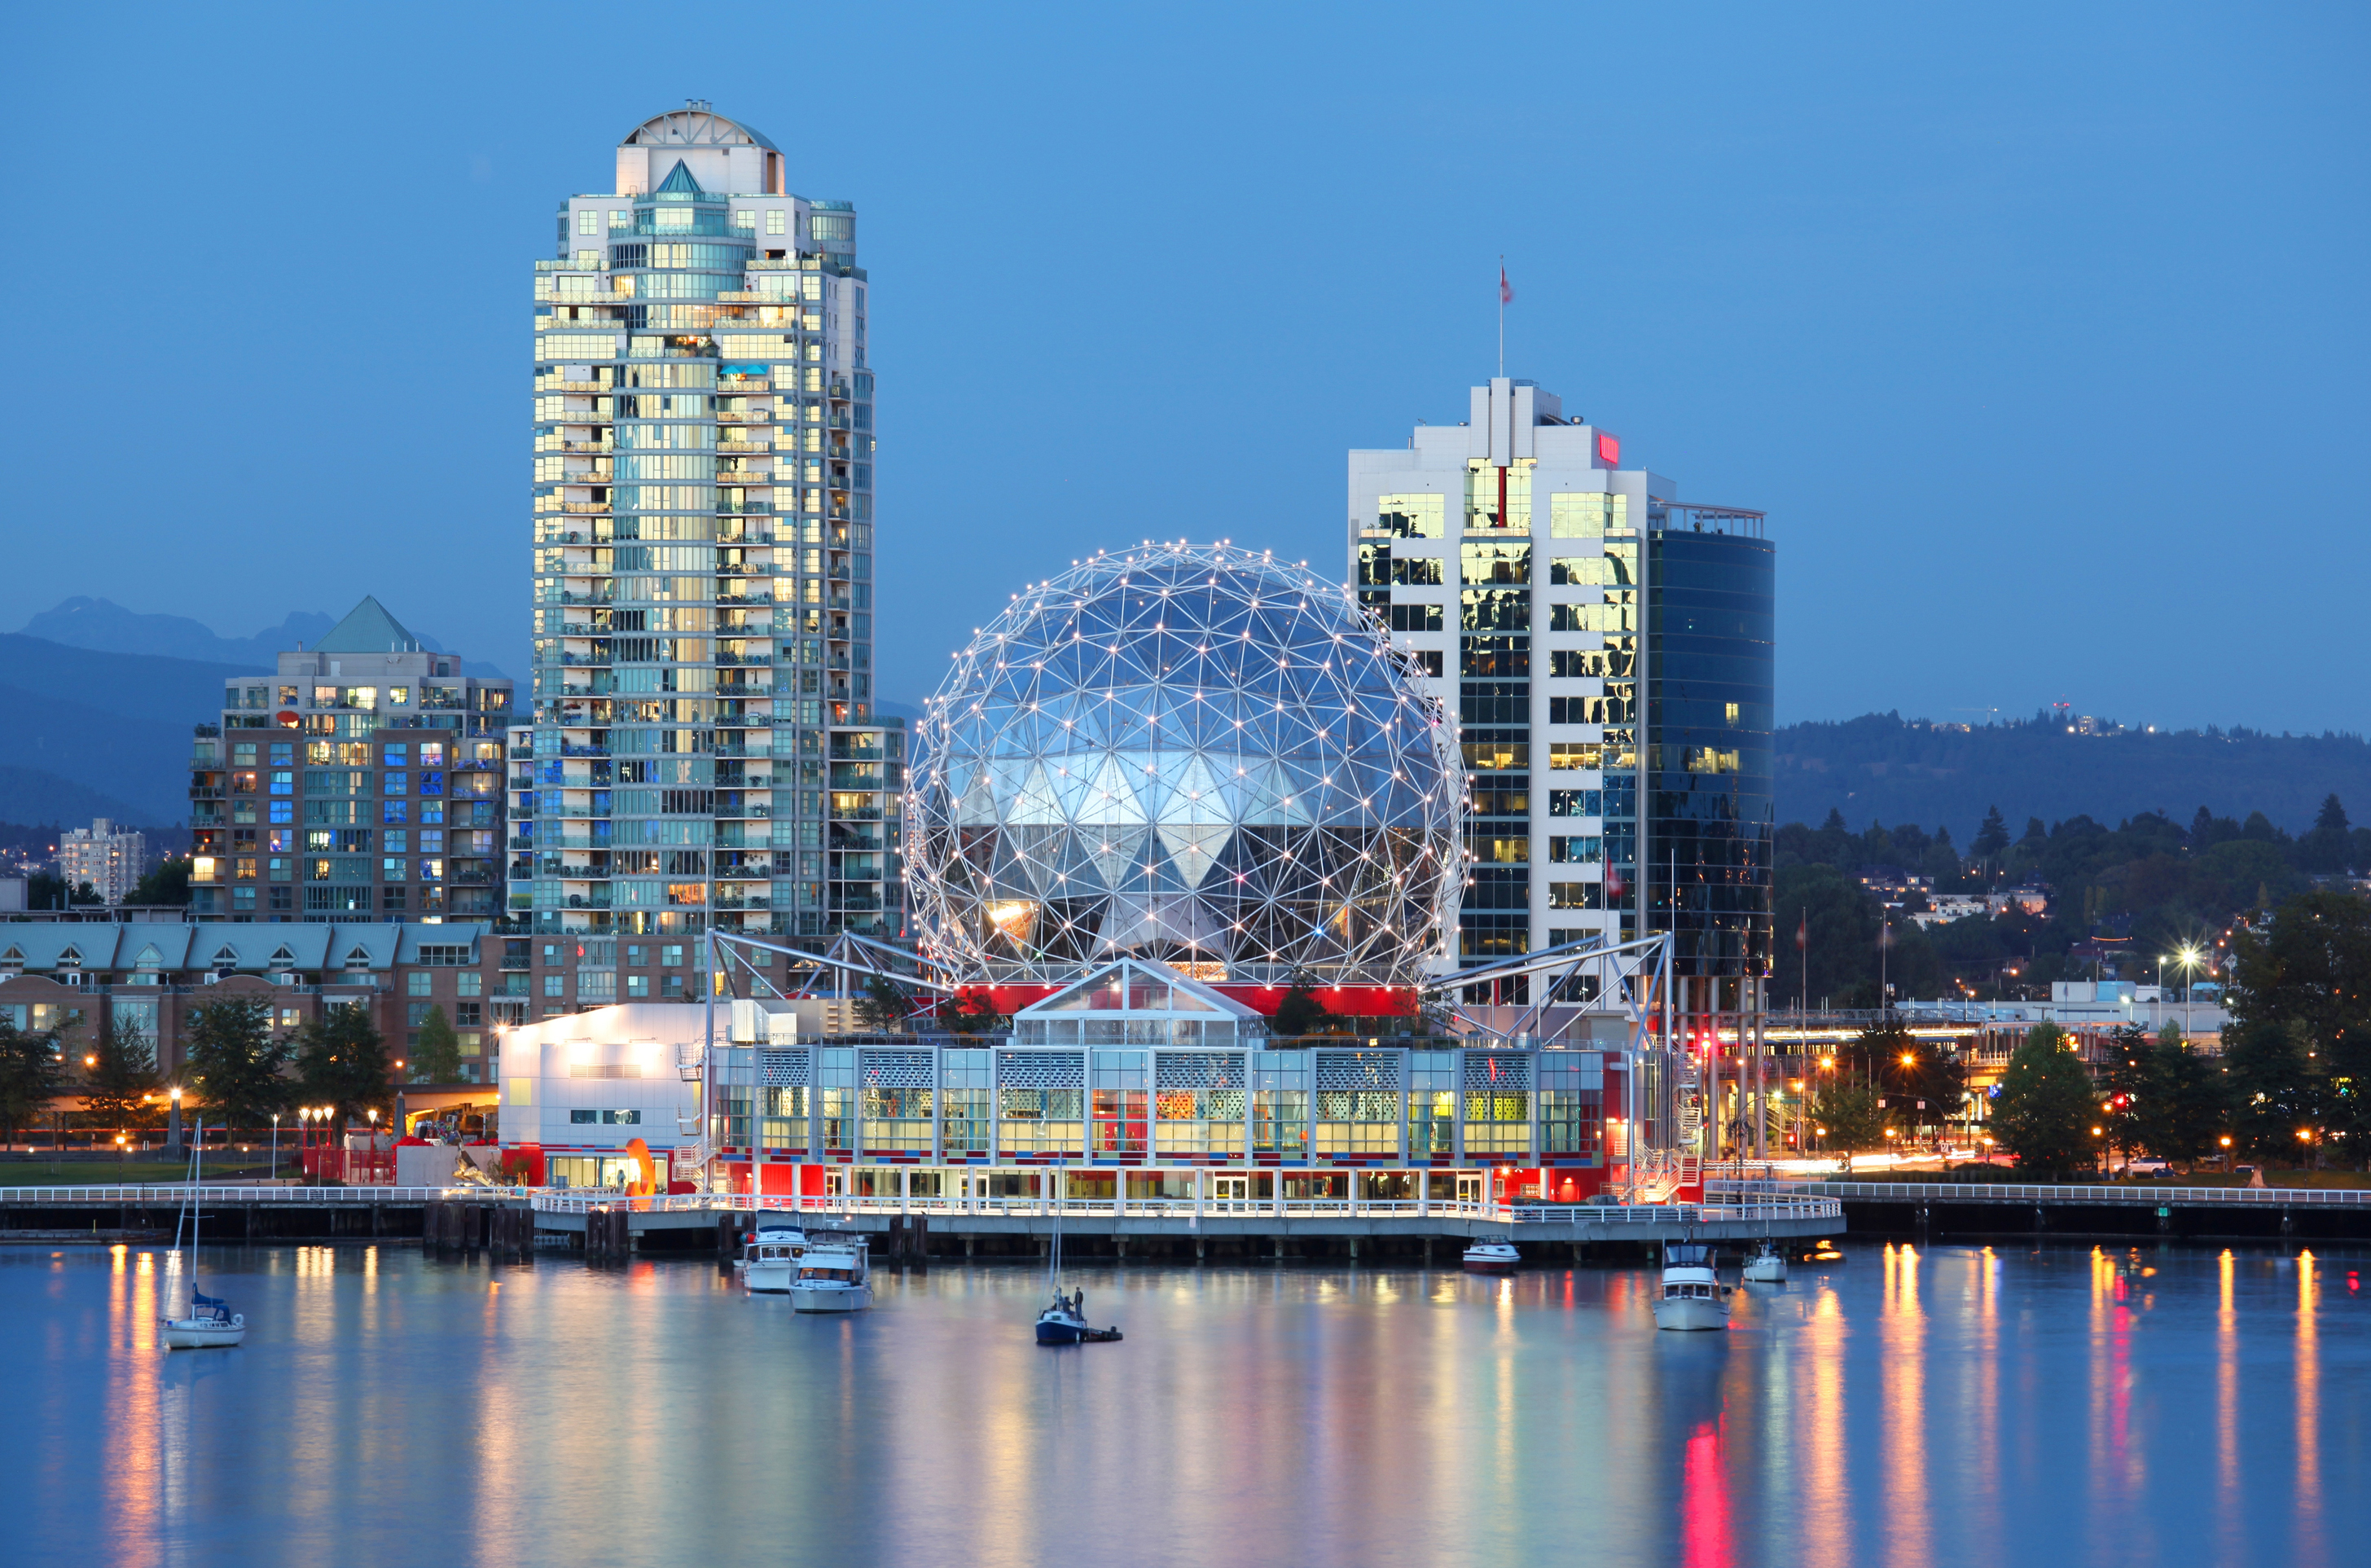 View of the shoreline of Vancouver with the dome of Science World in the centre. (danbreckwoldt/Thinkstock/PA)